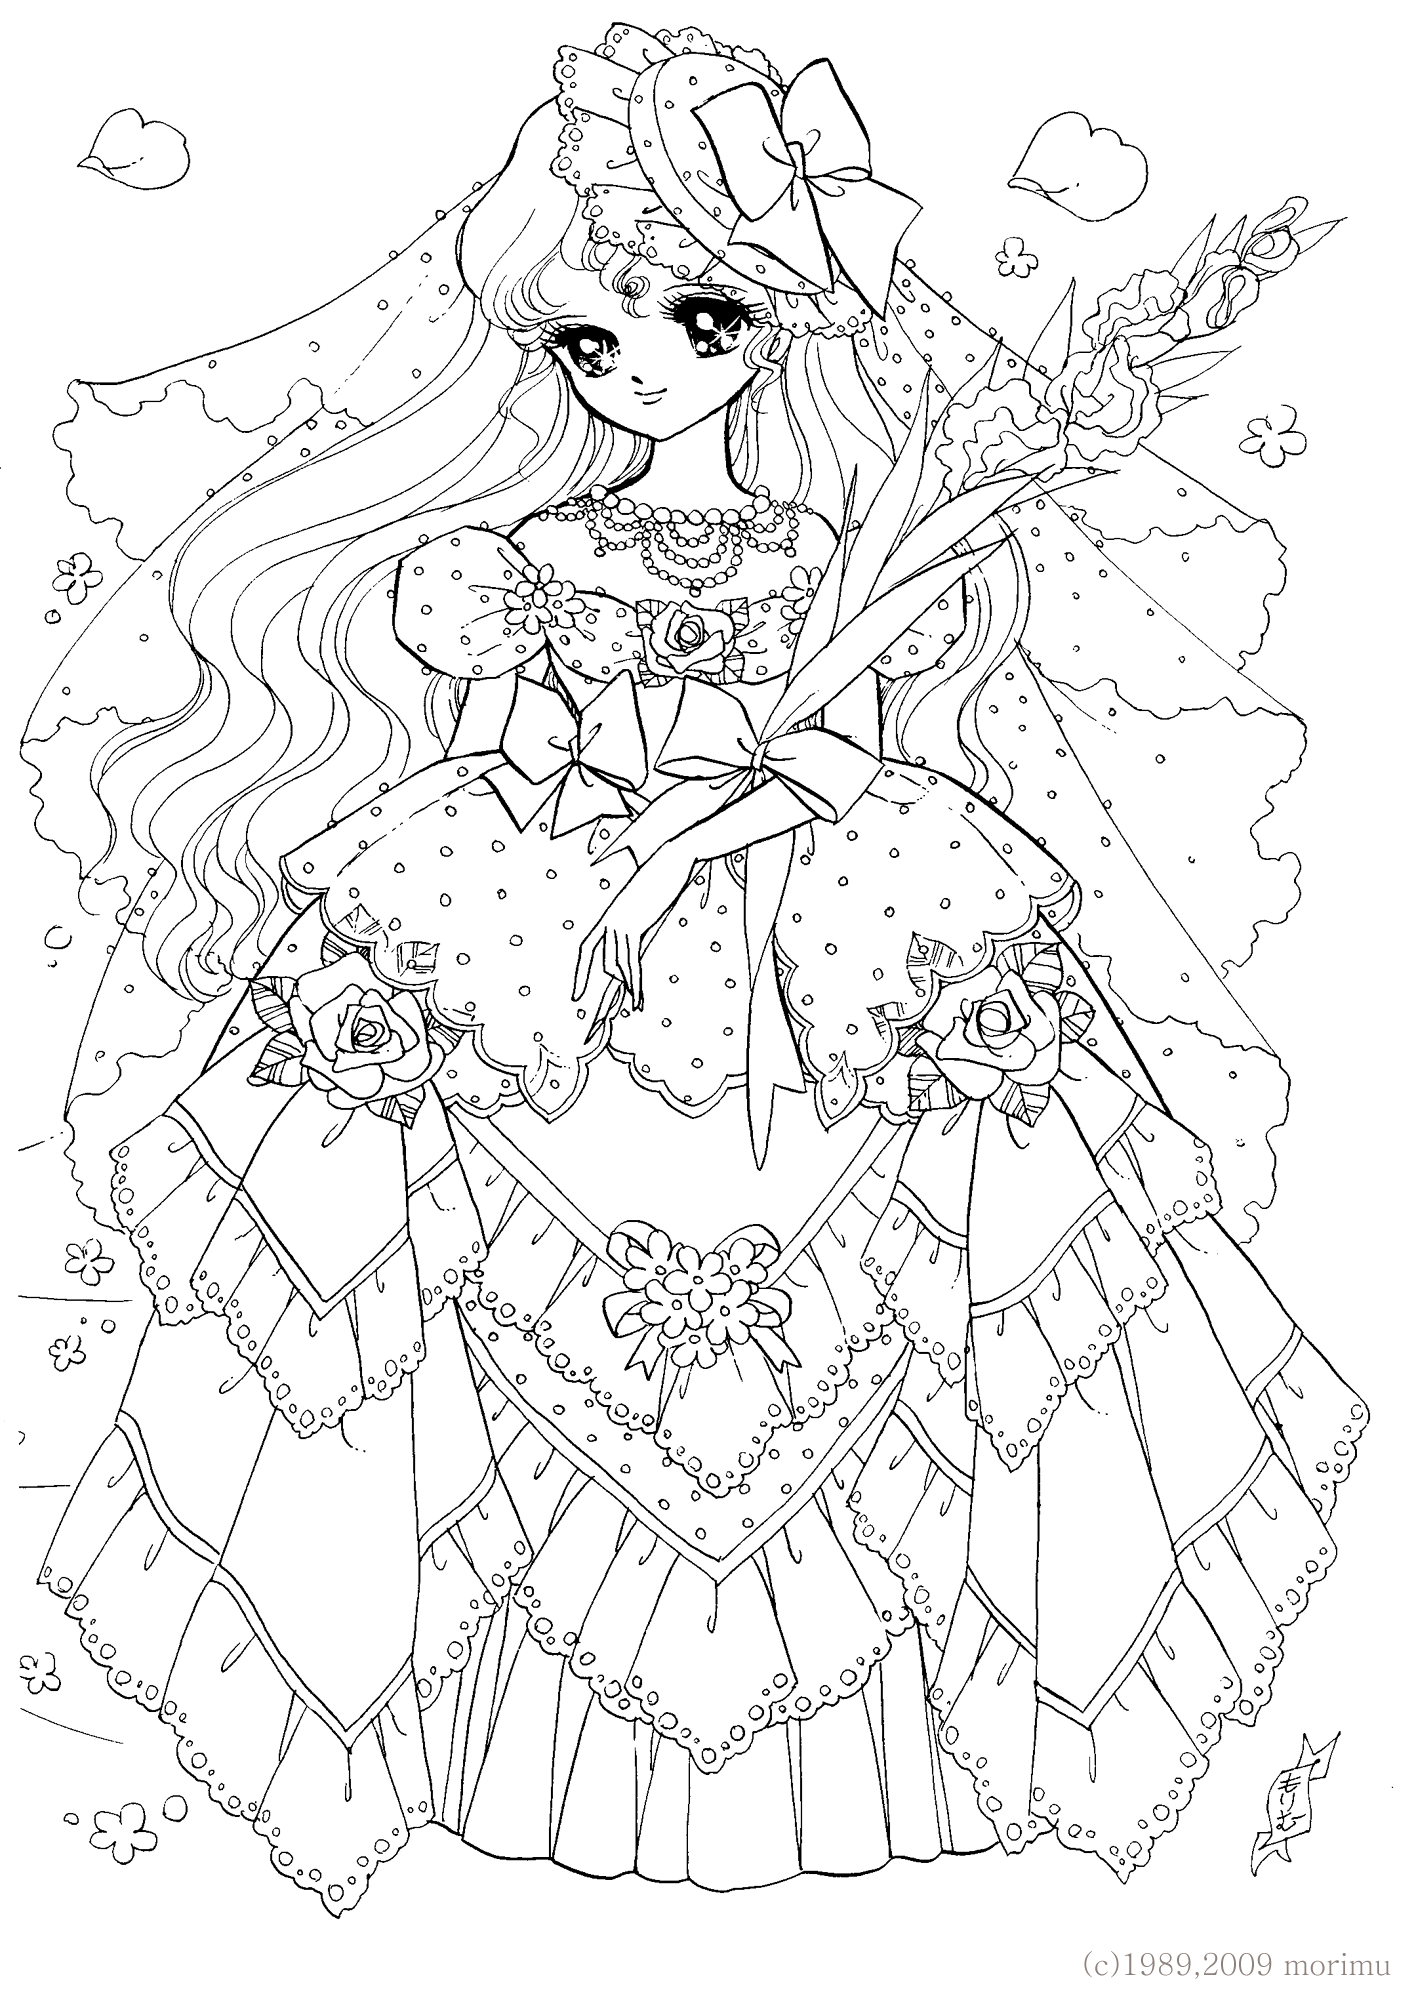 Http Morimu Com Nurie Coloring Pages Coloring Books Cute Coloring Pages